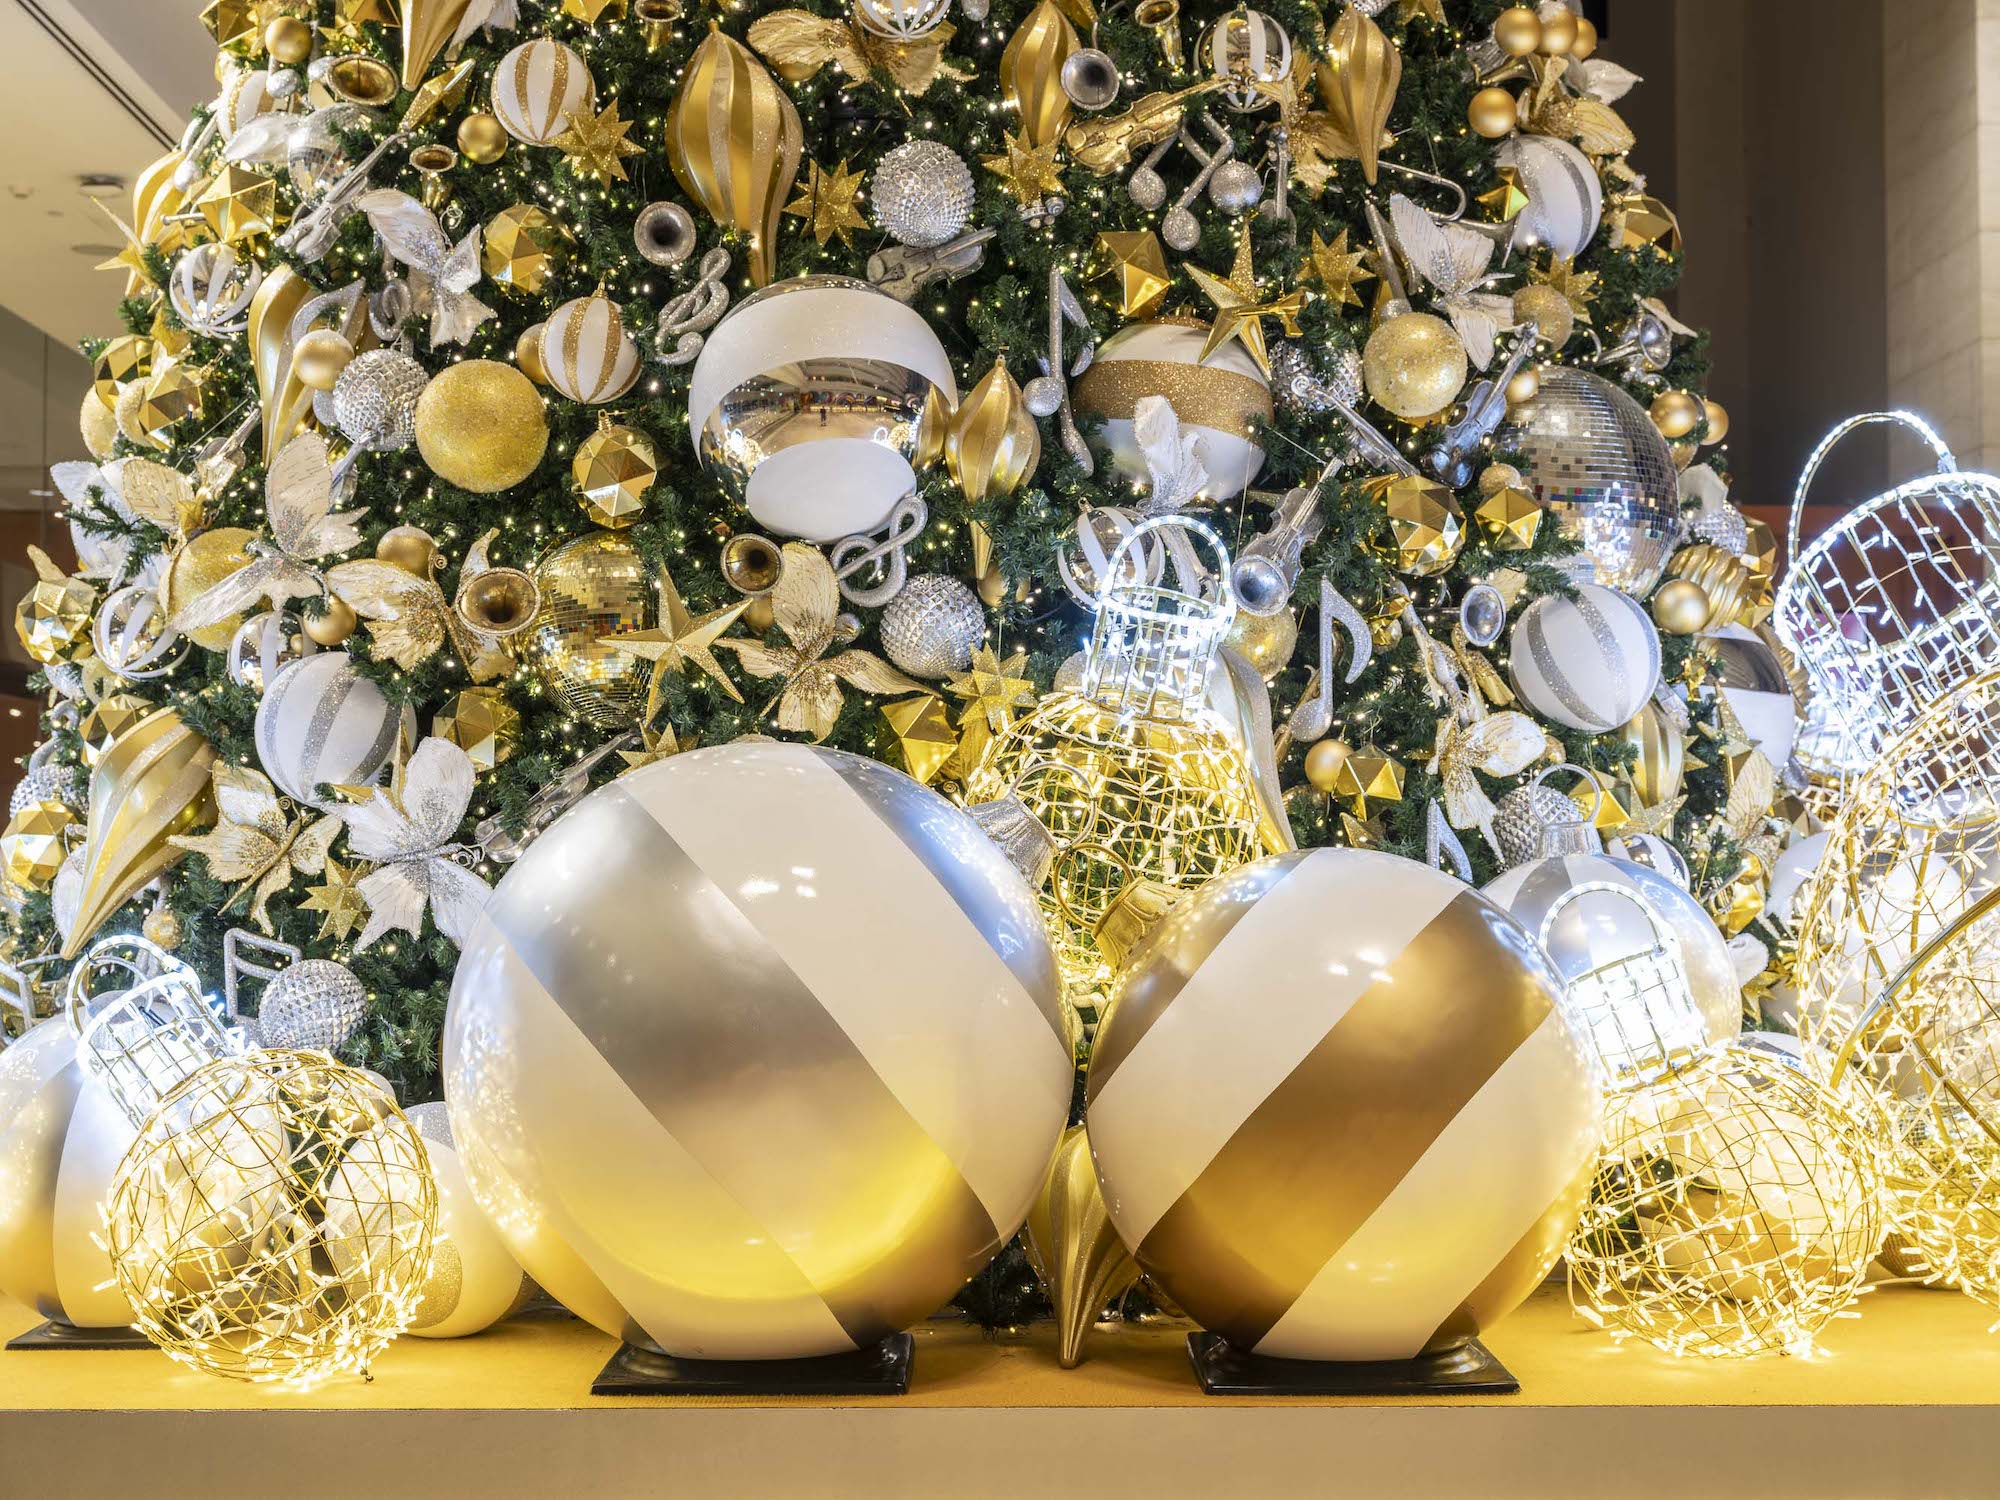 Marina Bay Sands Interior Photography by Jose Jeuland Golden ball ornaments under the Christmas tree